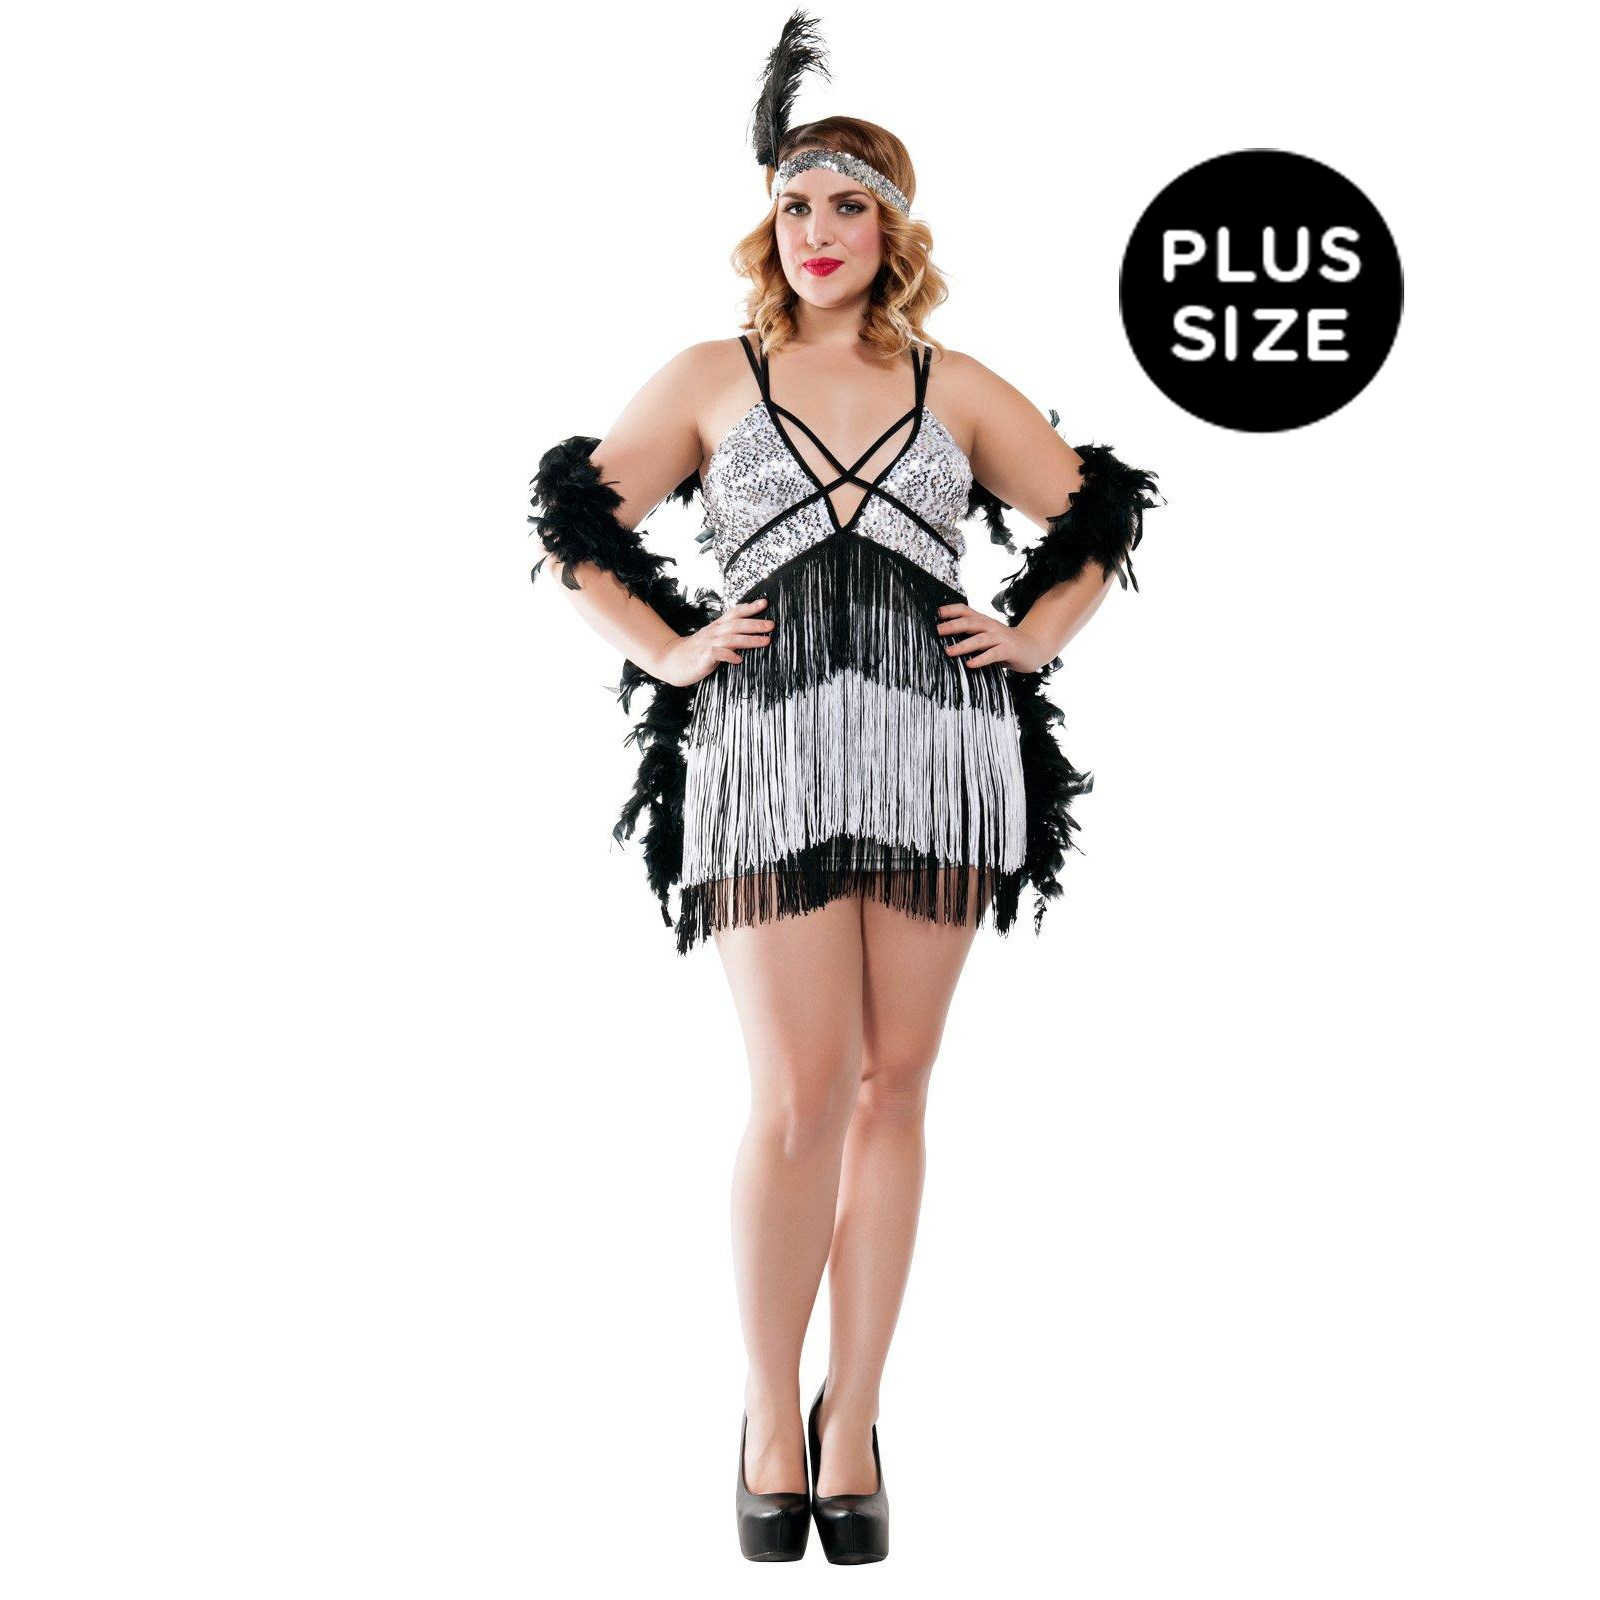 Boardwalk Flapper Costume for Plus Size Women | BuyCostumes.com